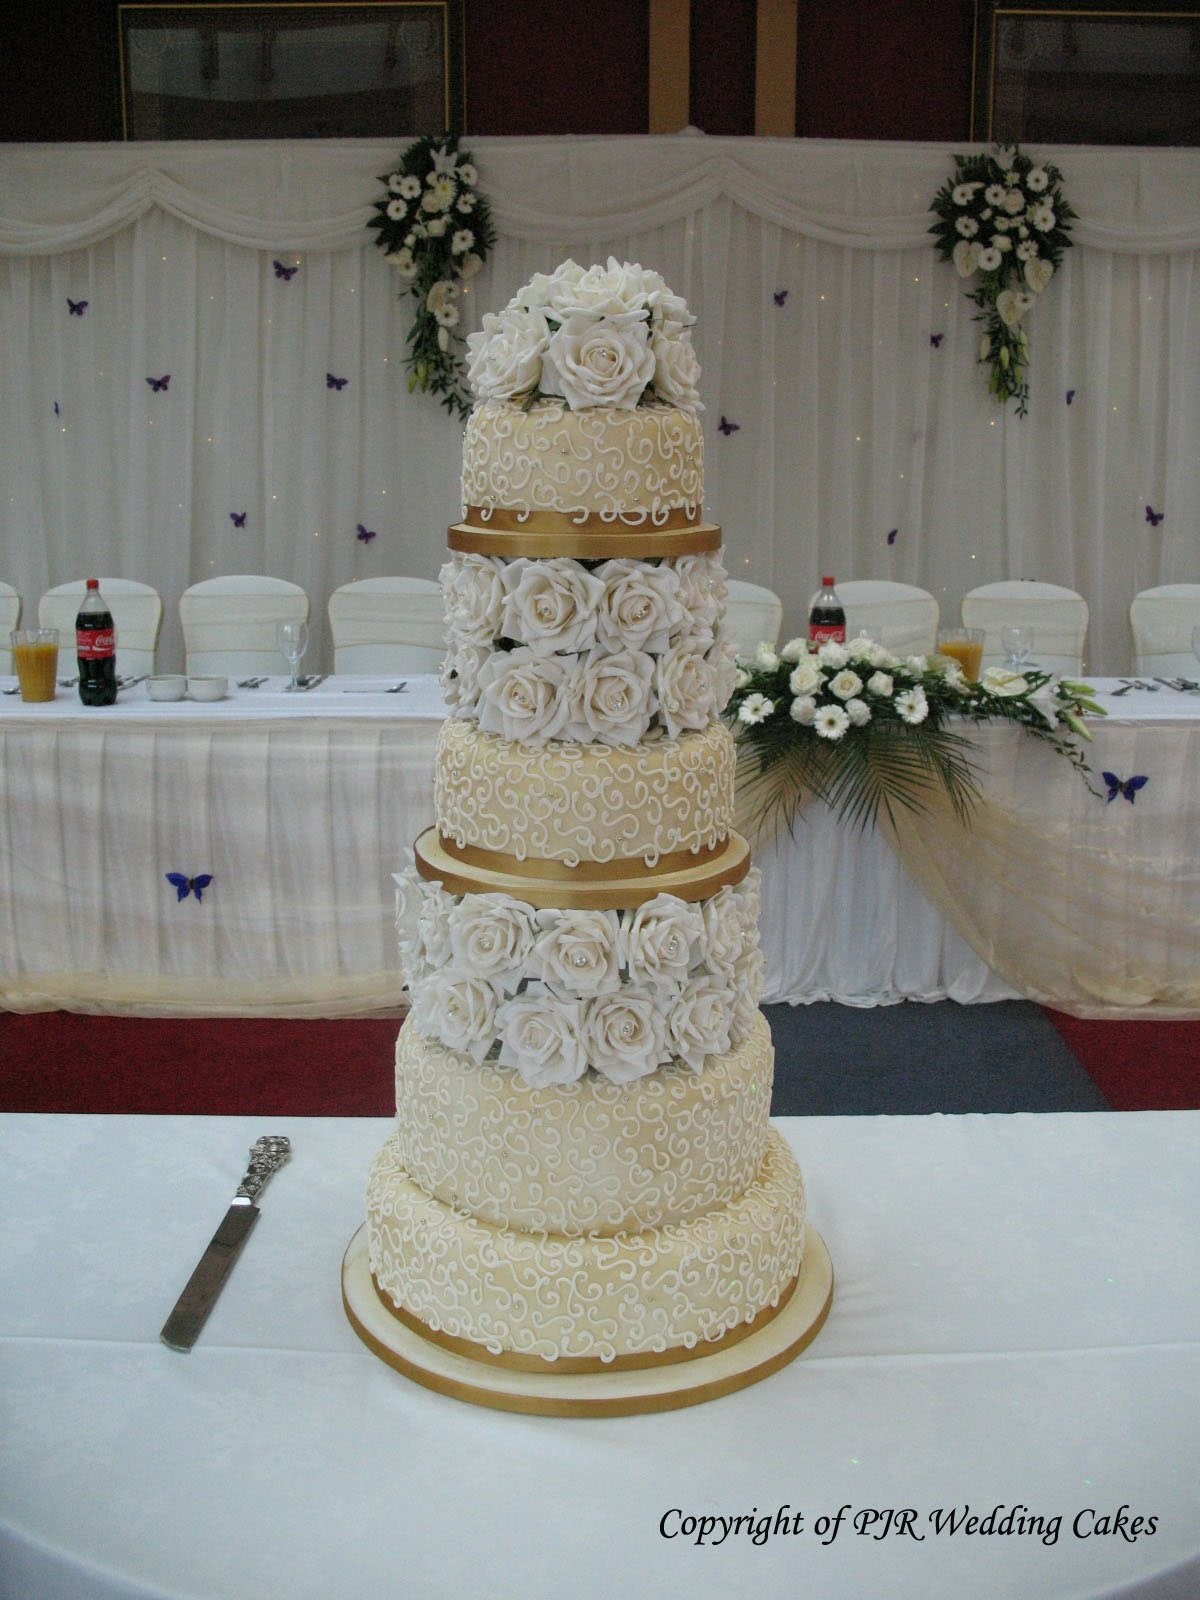 of wedding cake they want,